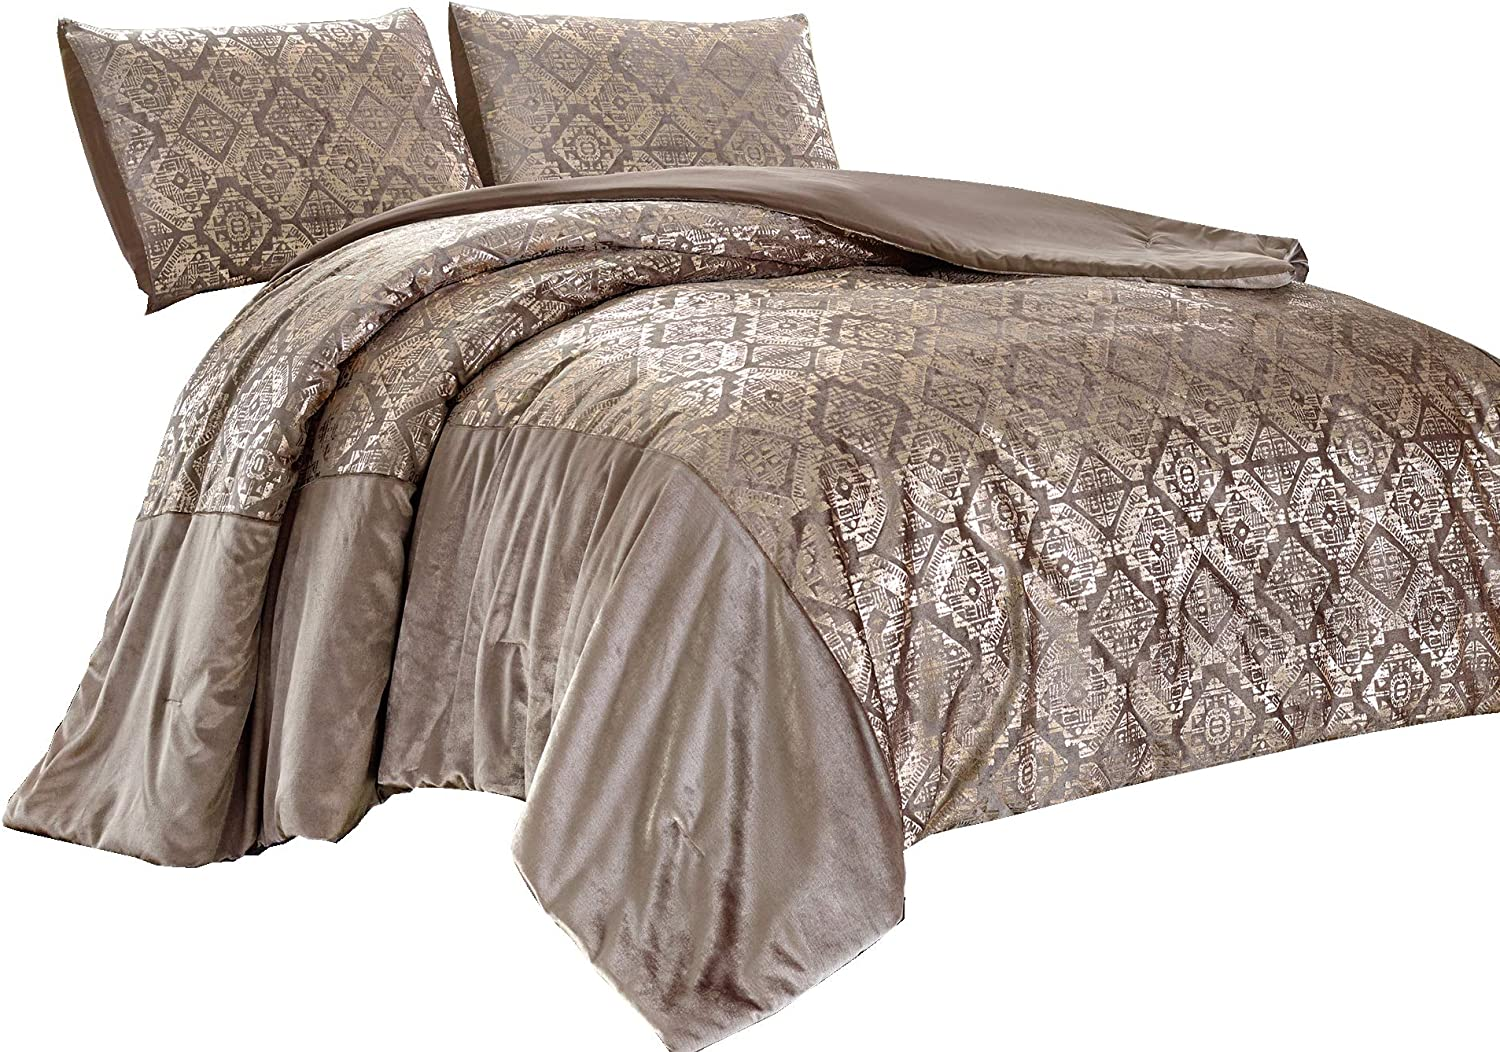 Chezmoi Collection Falcon 3-Piece Coverlet Set - Metallic Glitter Champagne Gold Velvet Bedspread, King Size